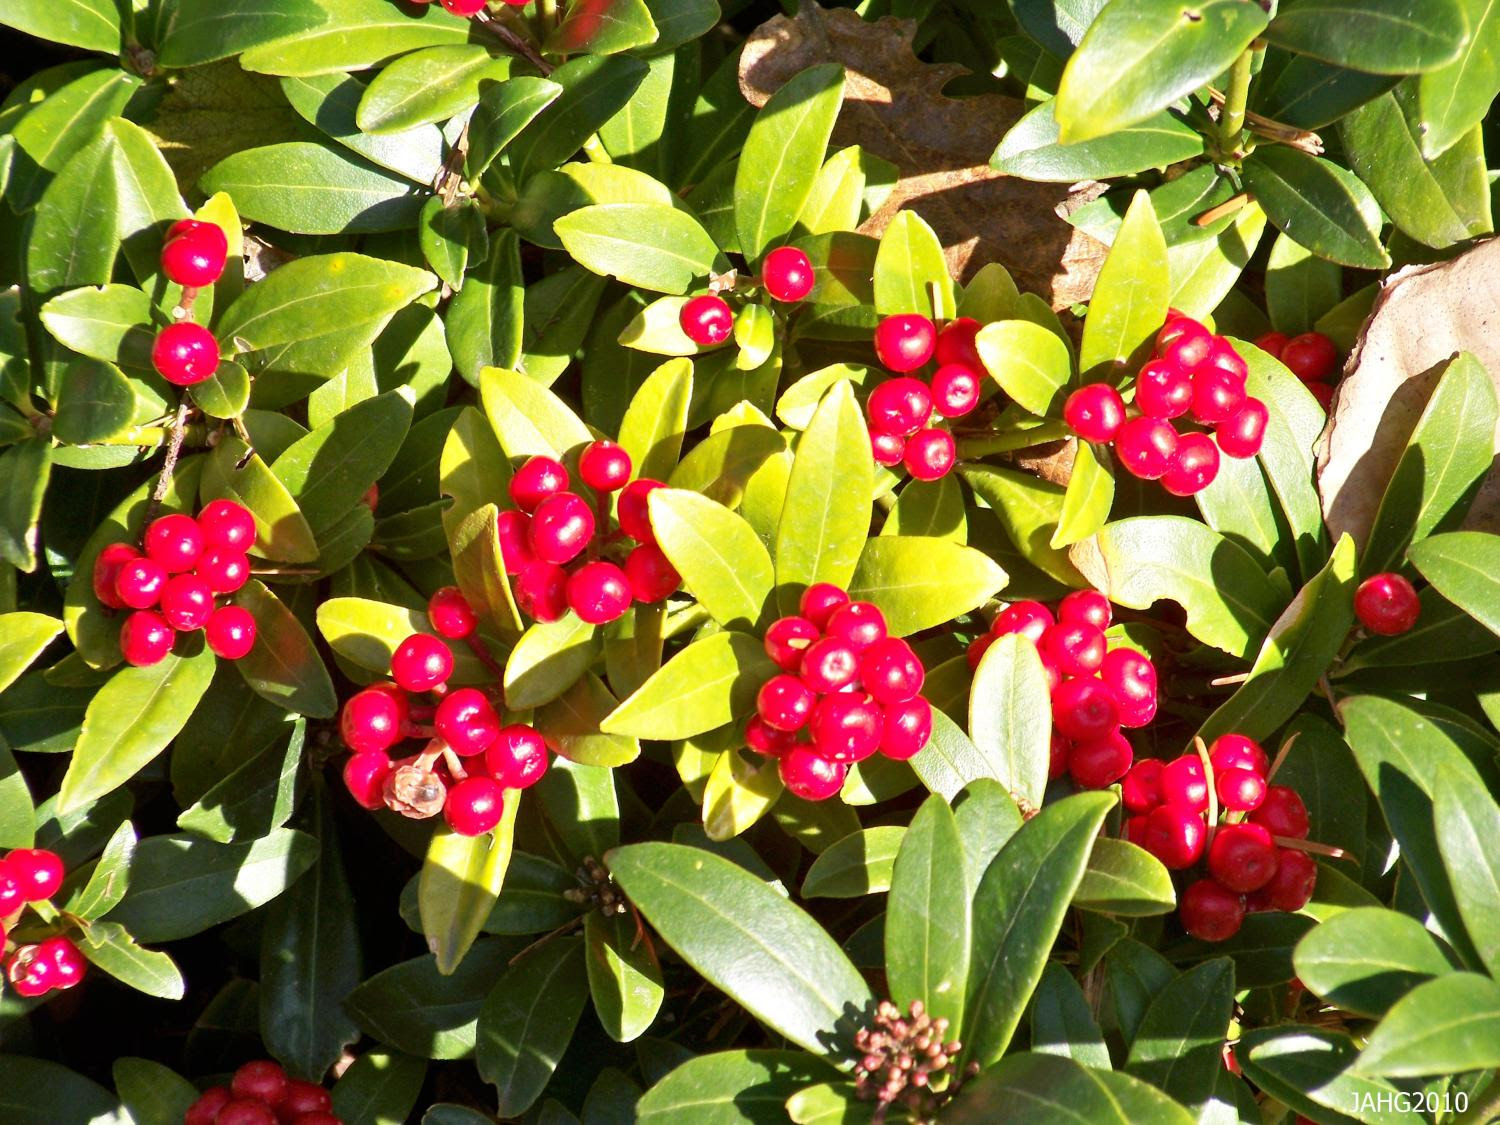 The berries of Skimia japonica are a bright shiny red and are very festive looking at this time of the year.